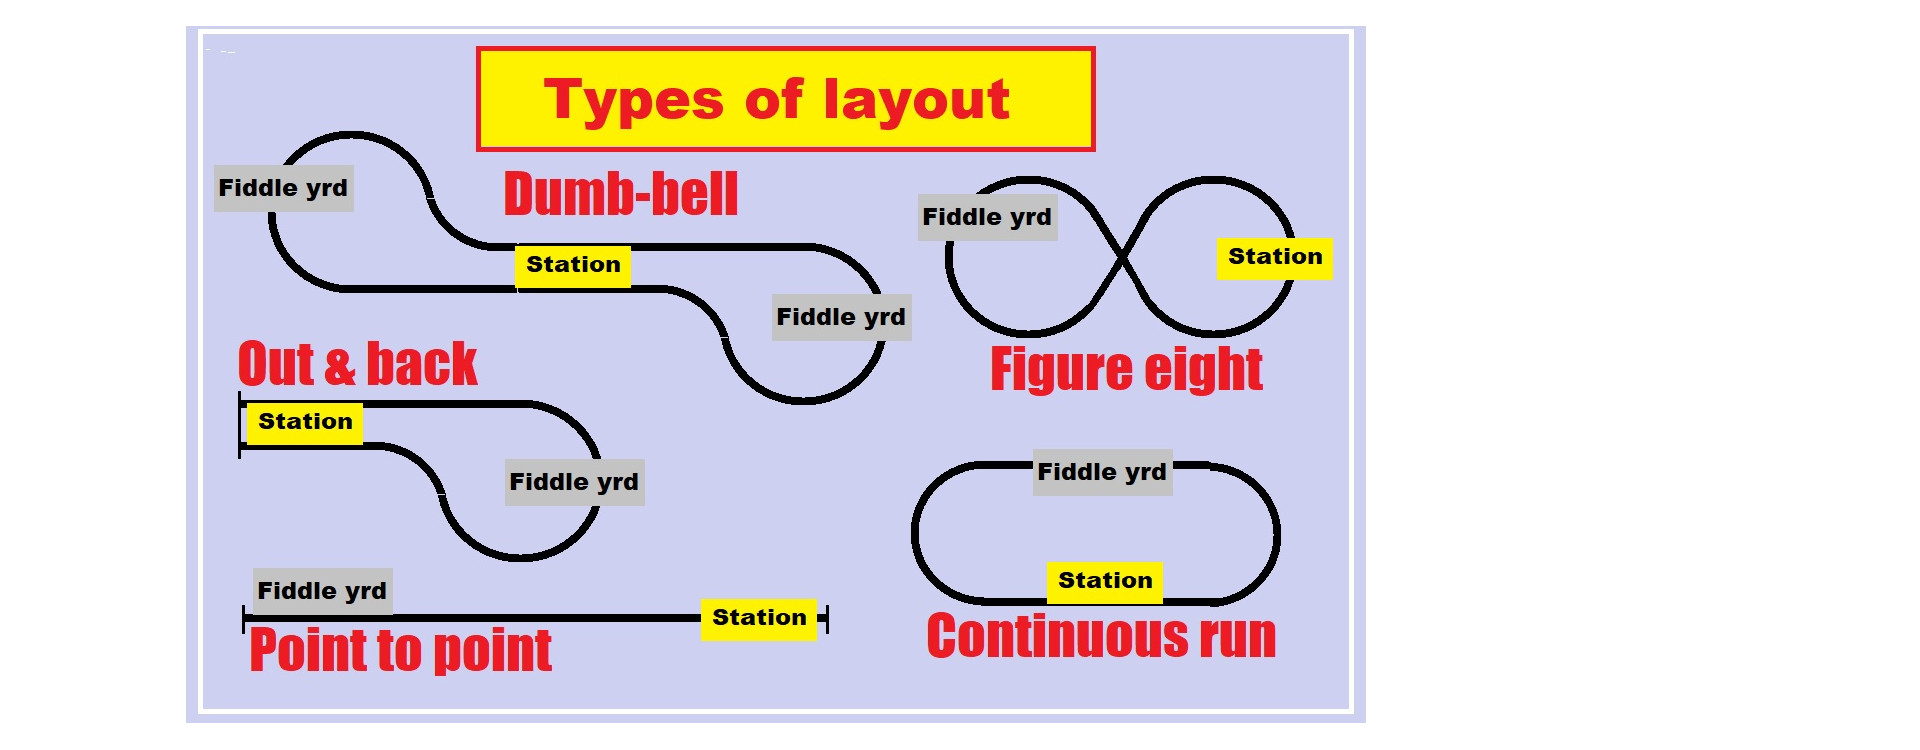 What different types of layout are there?